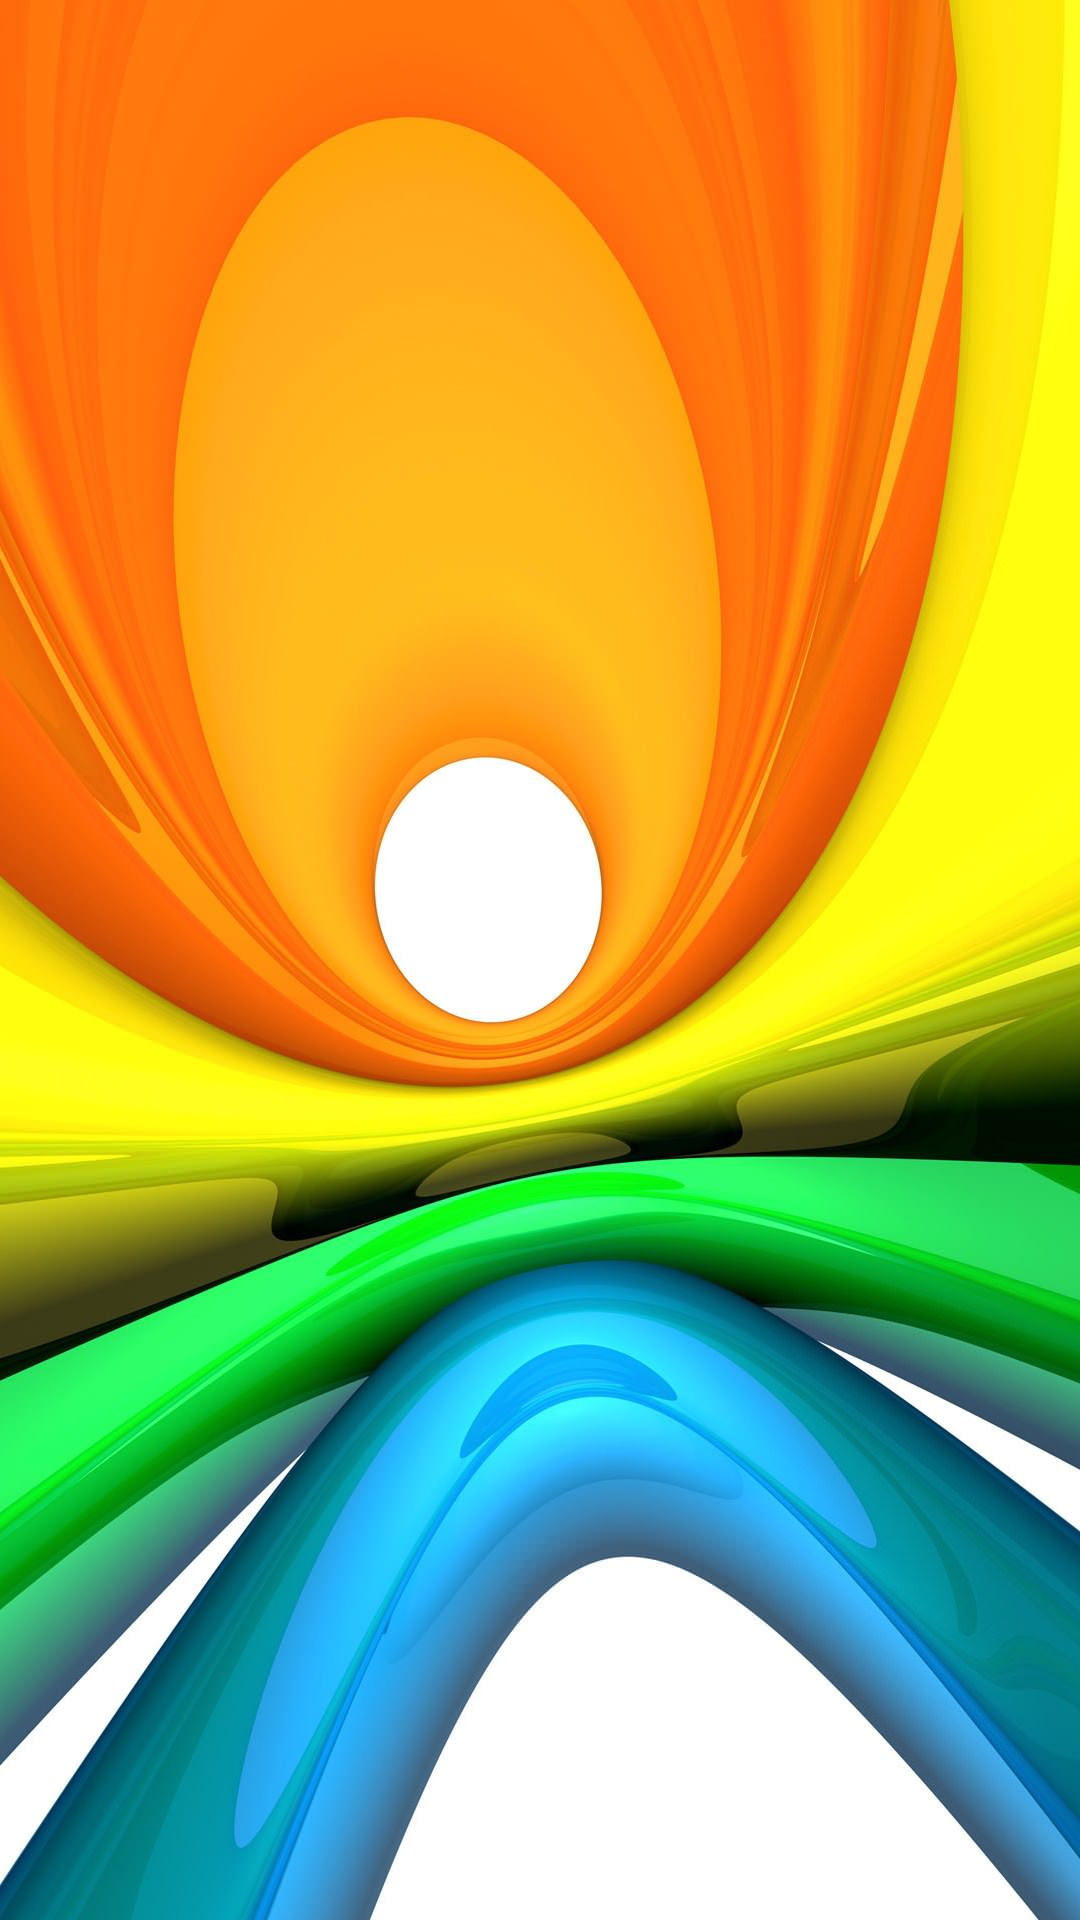 Wallpapers-For-Galaxy-S4-Textures-2